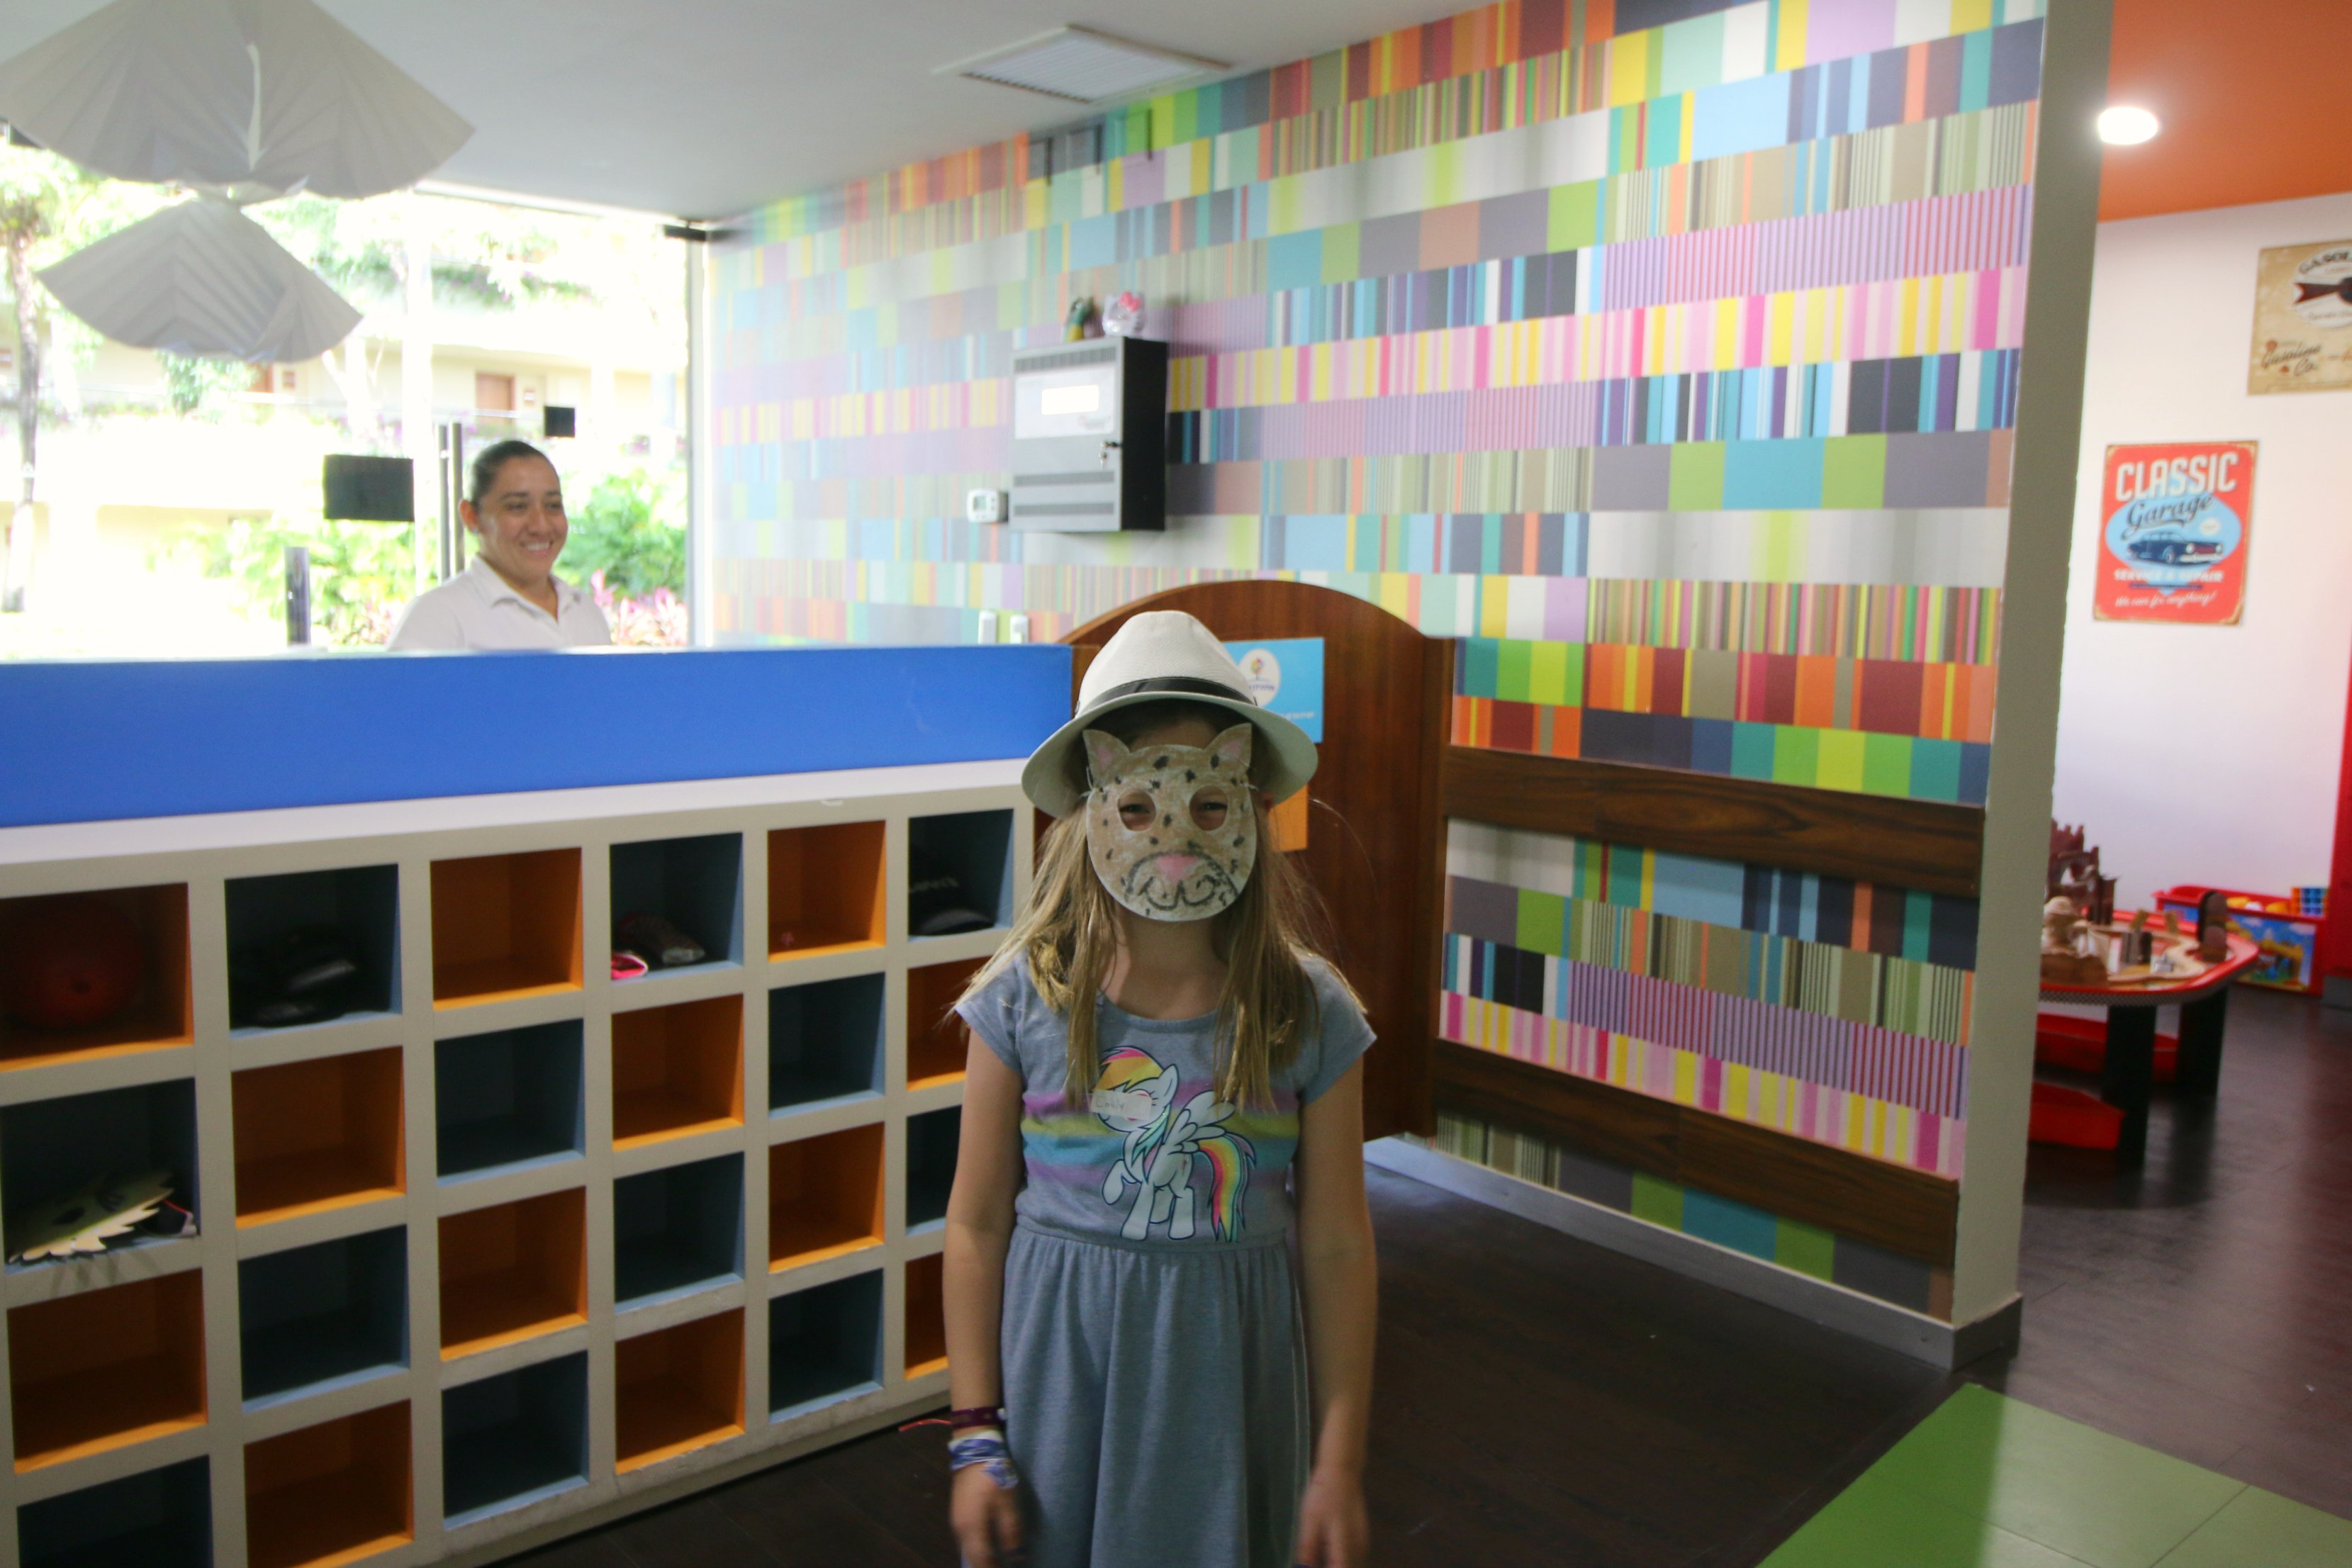 moon-palace-cancun-fun-for-kids